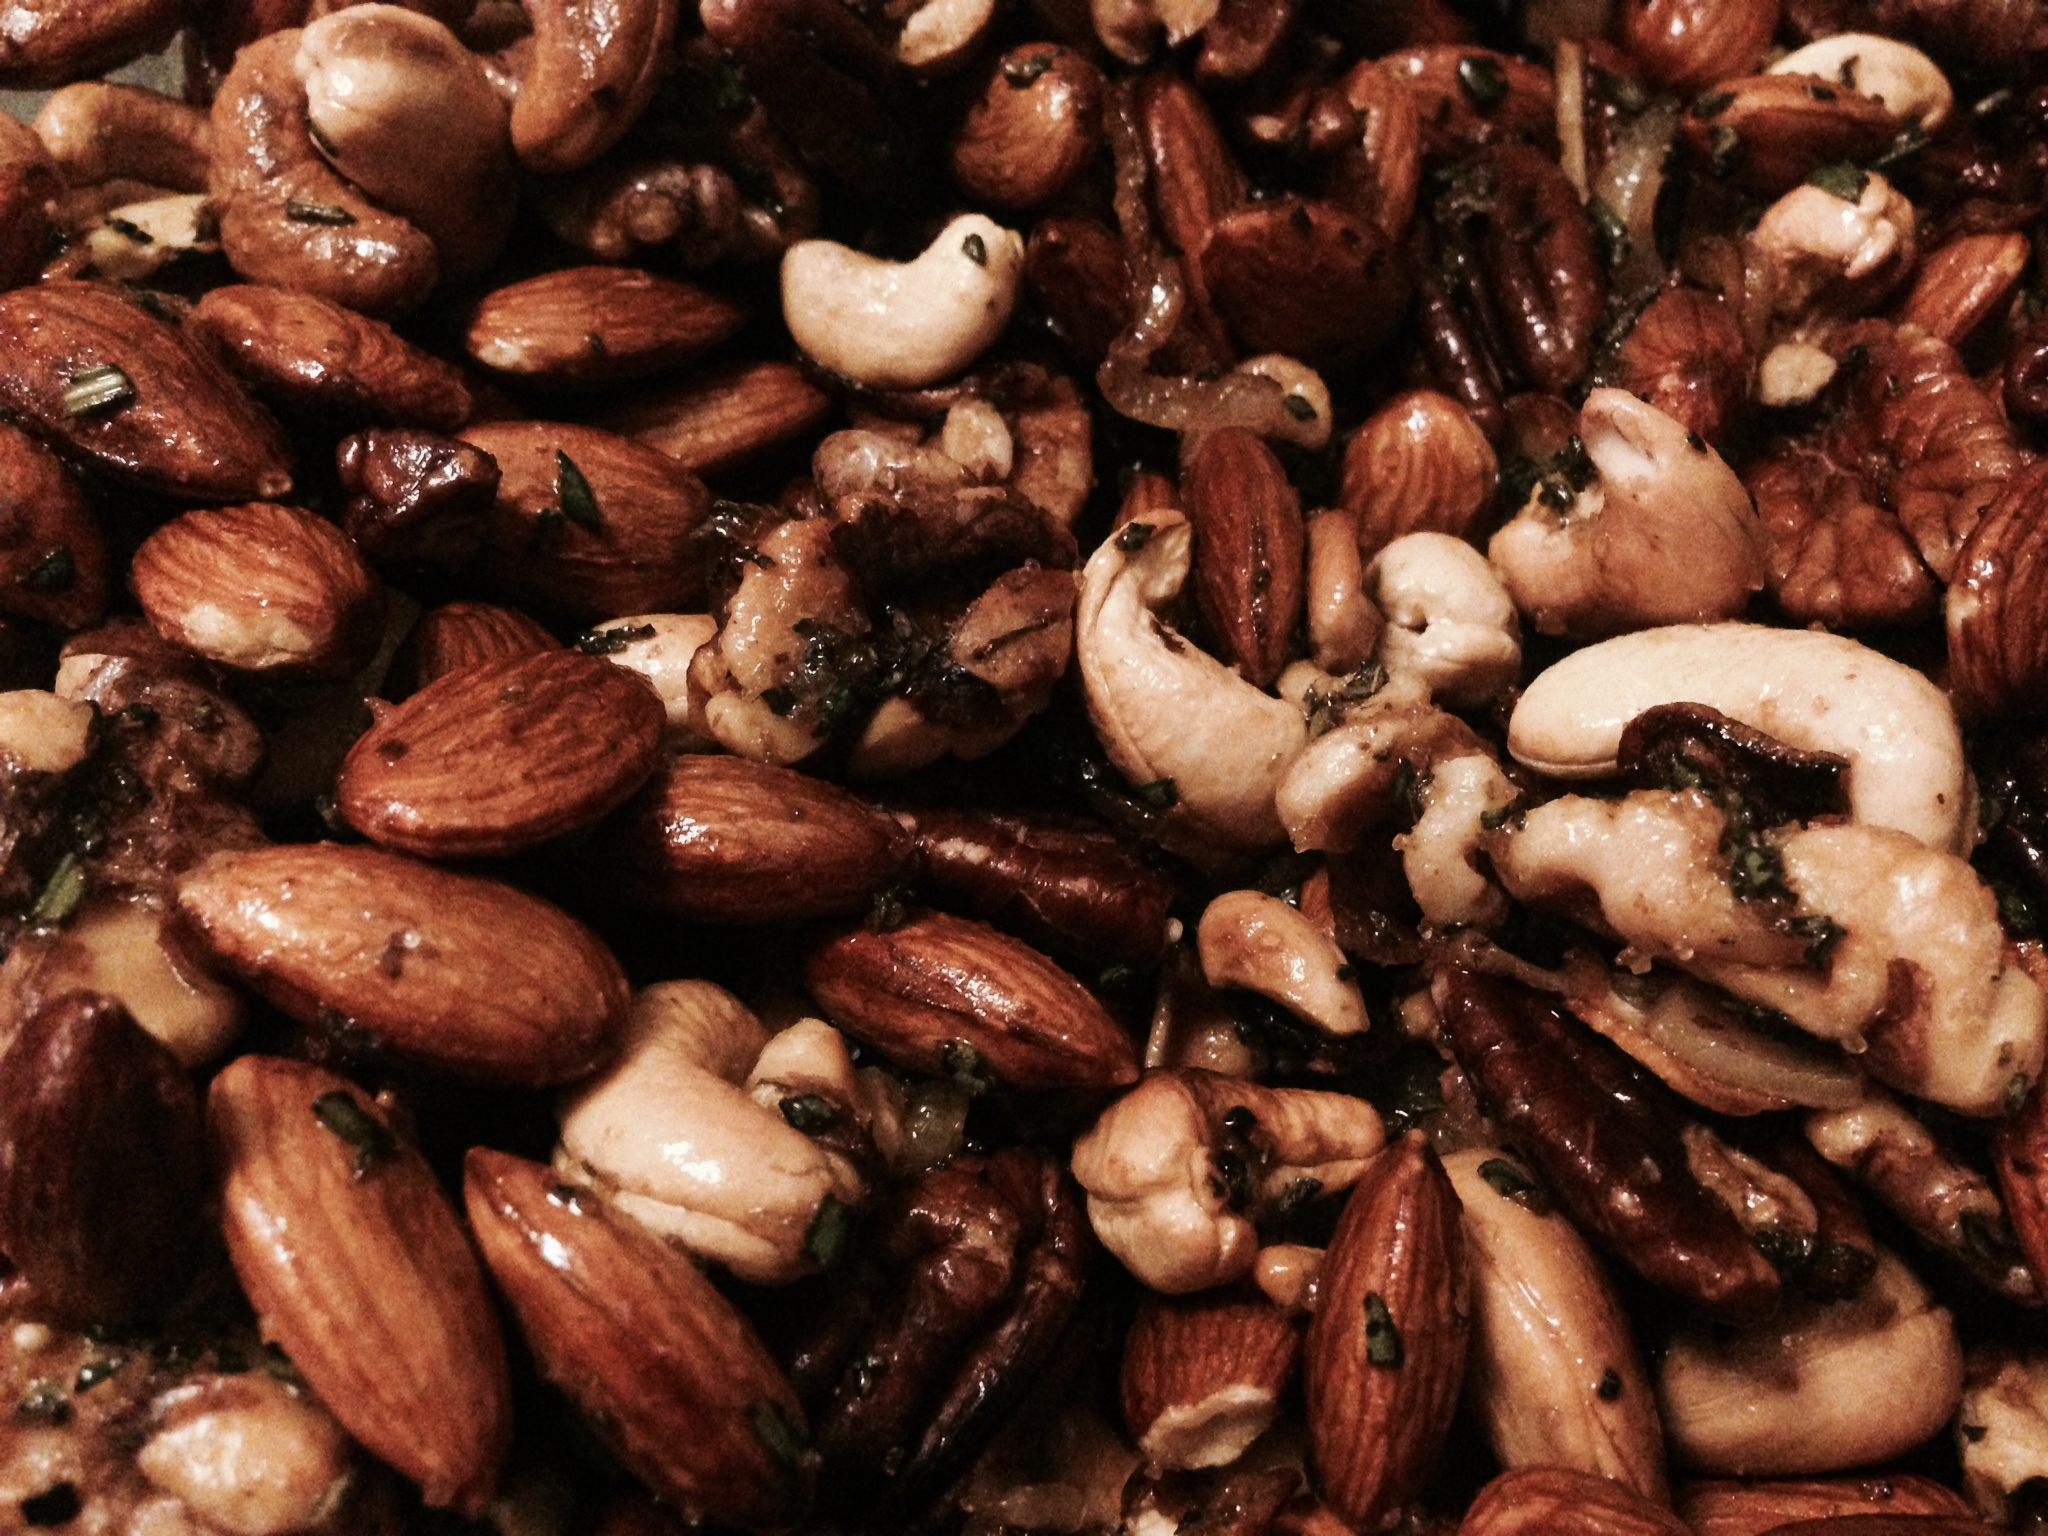 Warm Rosemary, Shallot, and Garlic Mixed Nuts